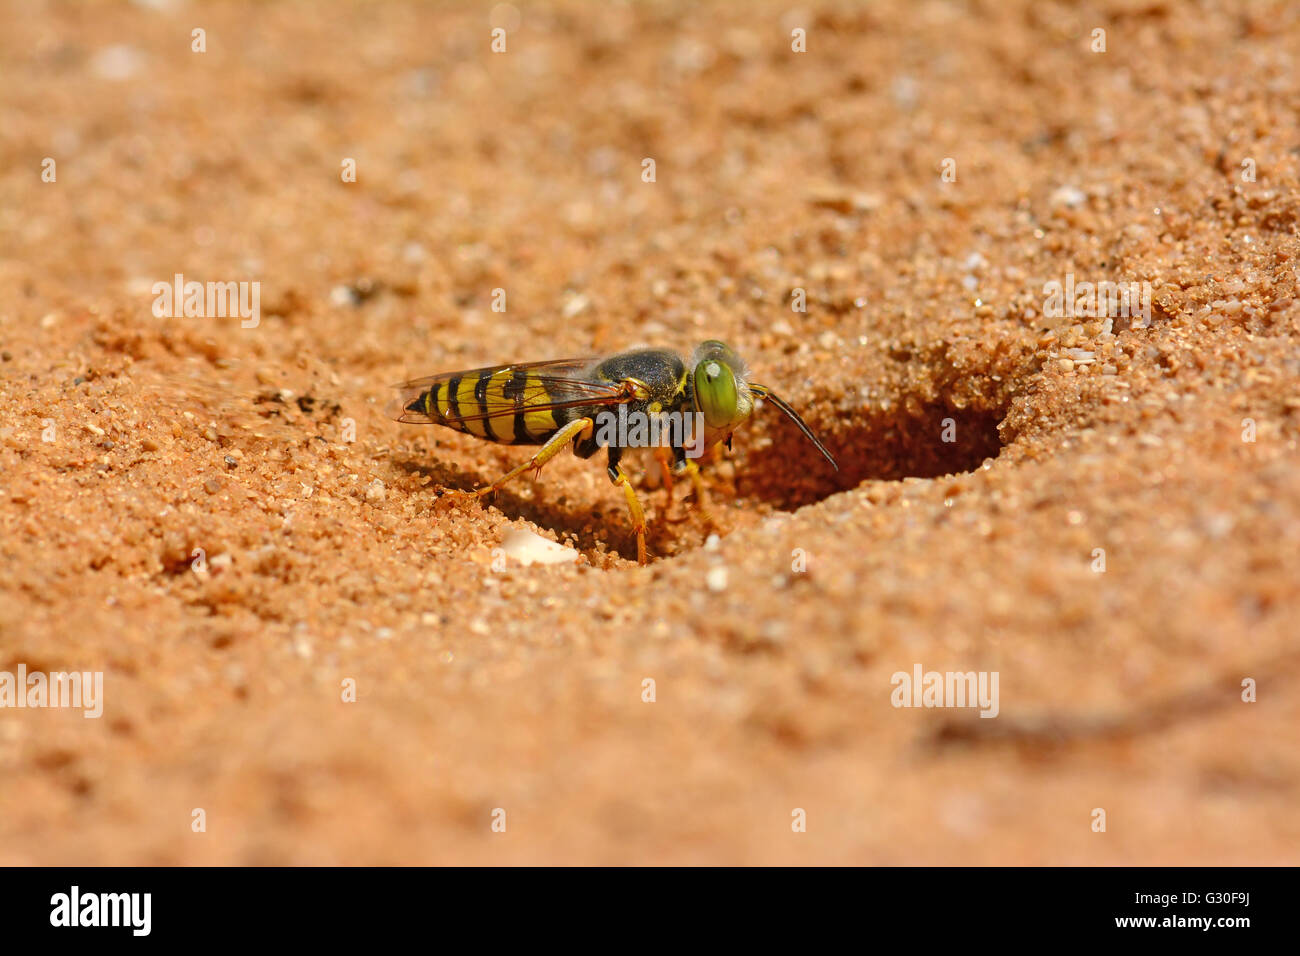 Wasp digging  in sand - Stock Image